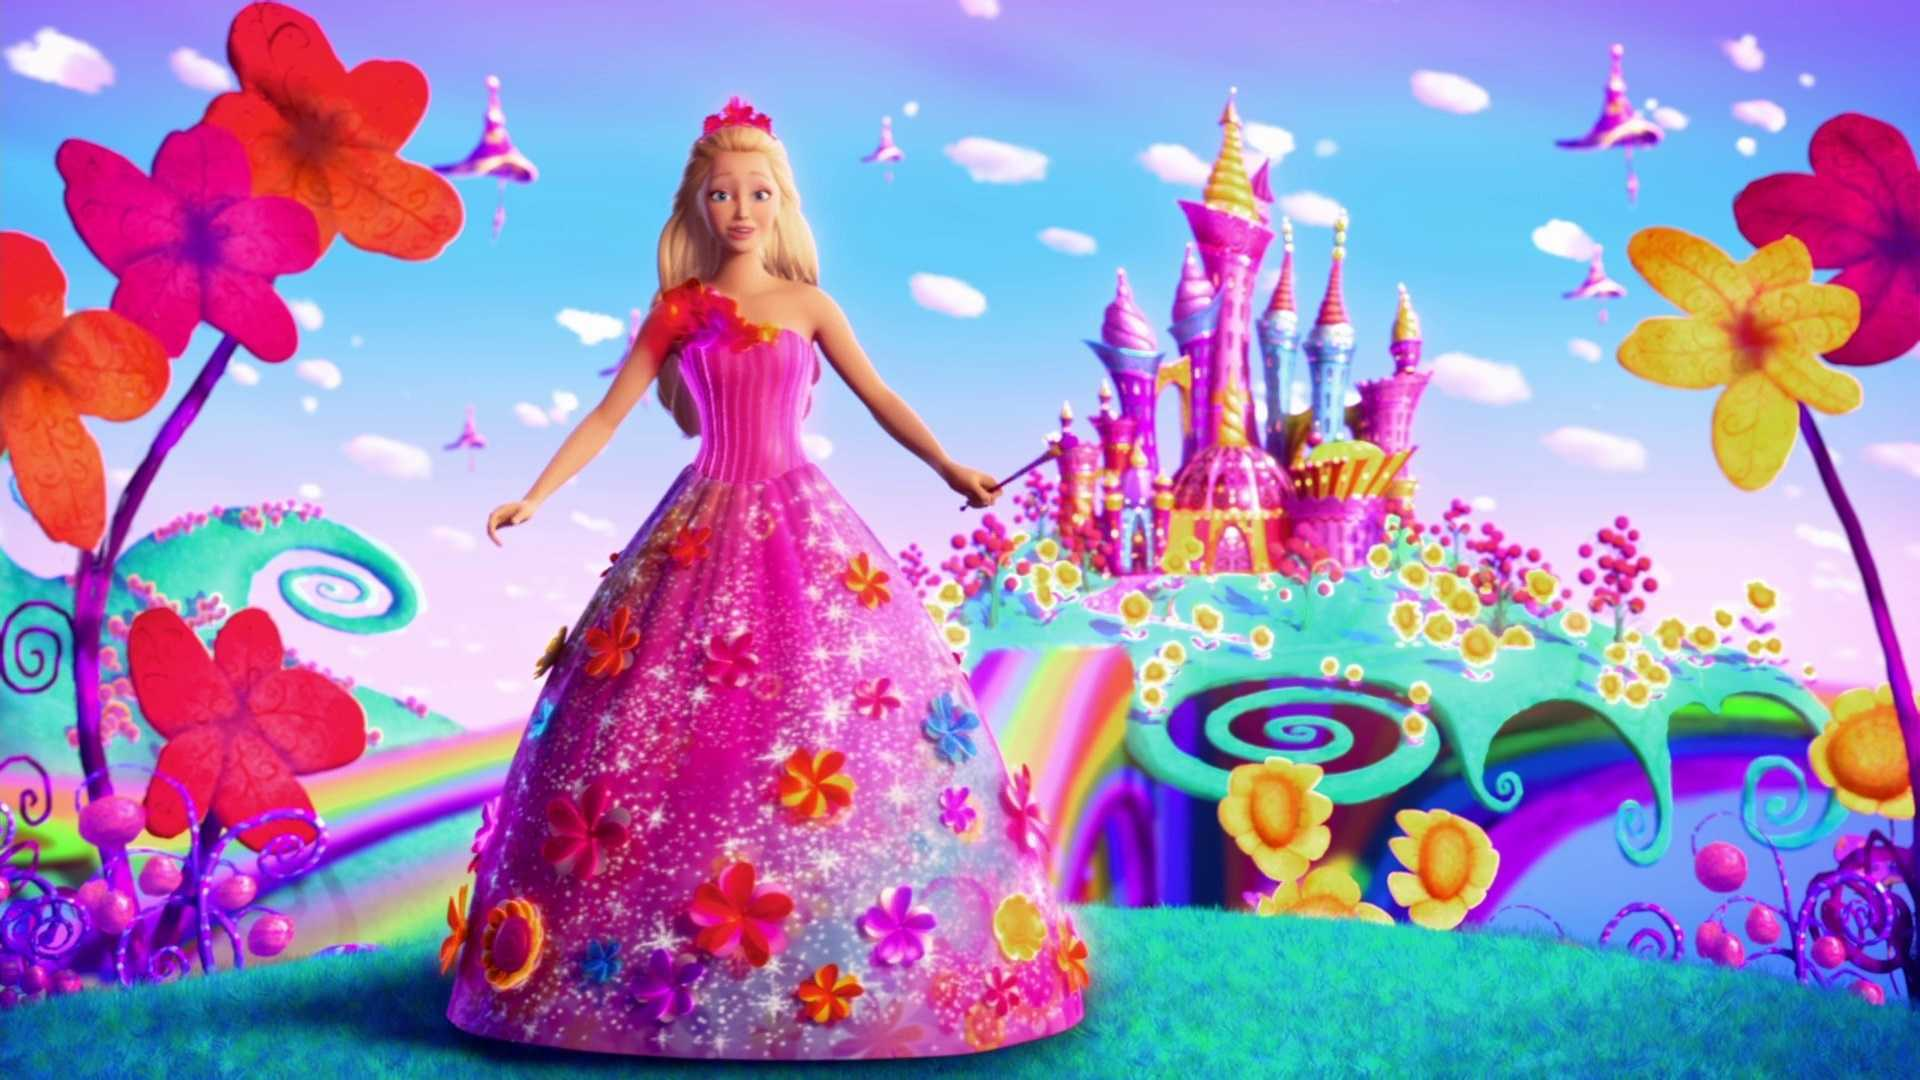 Latest Wallpapers Of Barbie On 2016 Wallpaper Cave